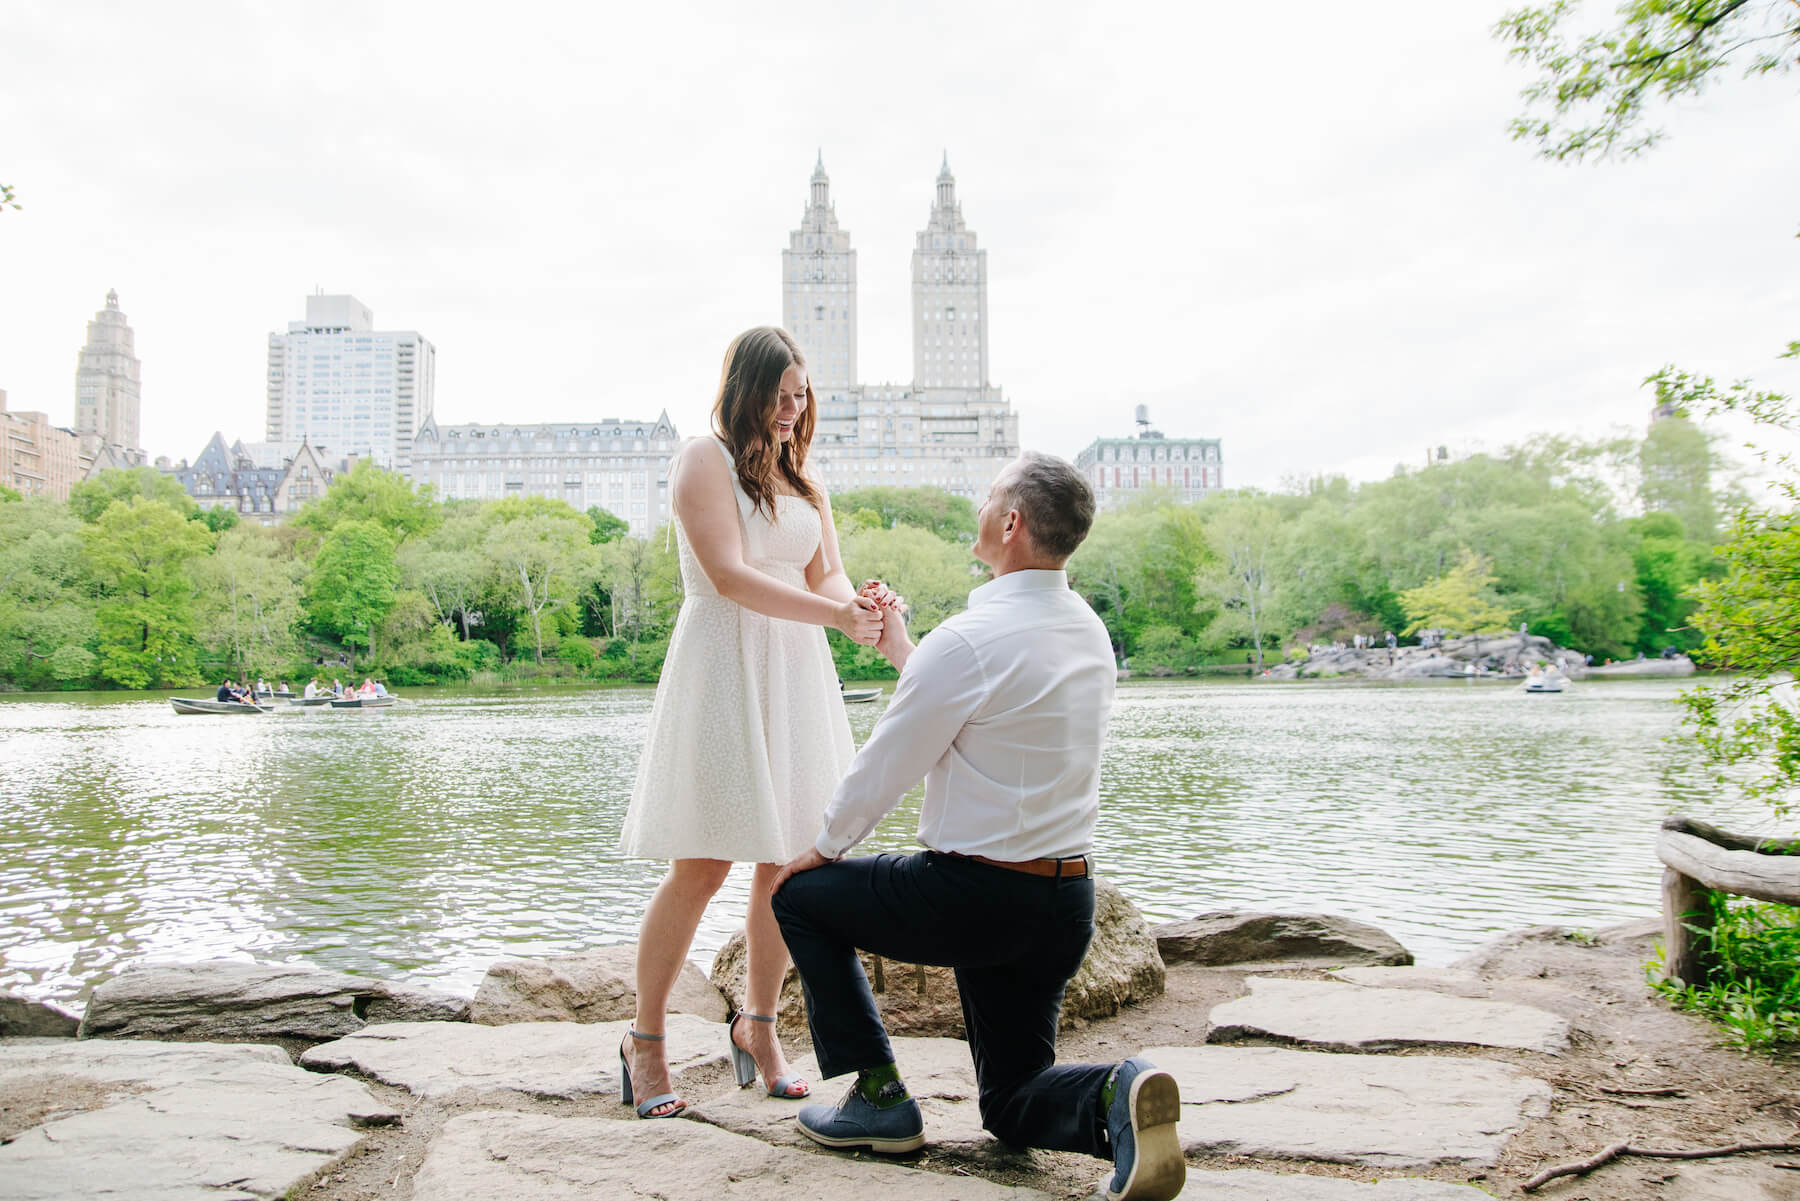 Man proposing to his partner in Central Park, New York City USA